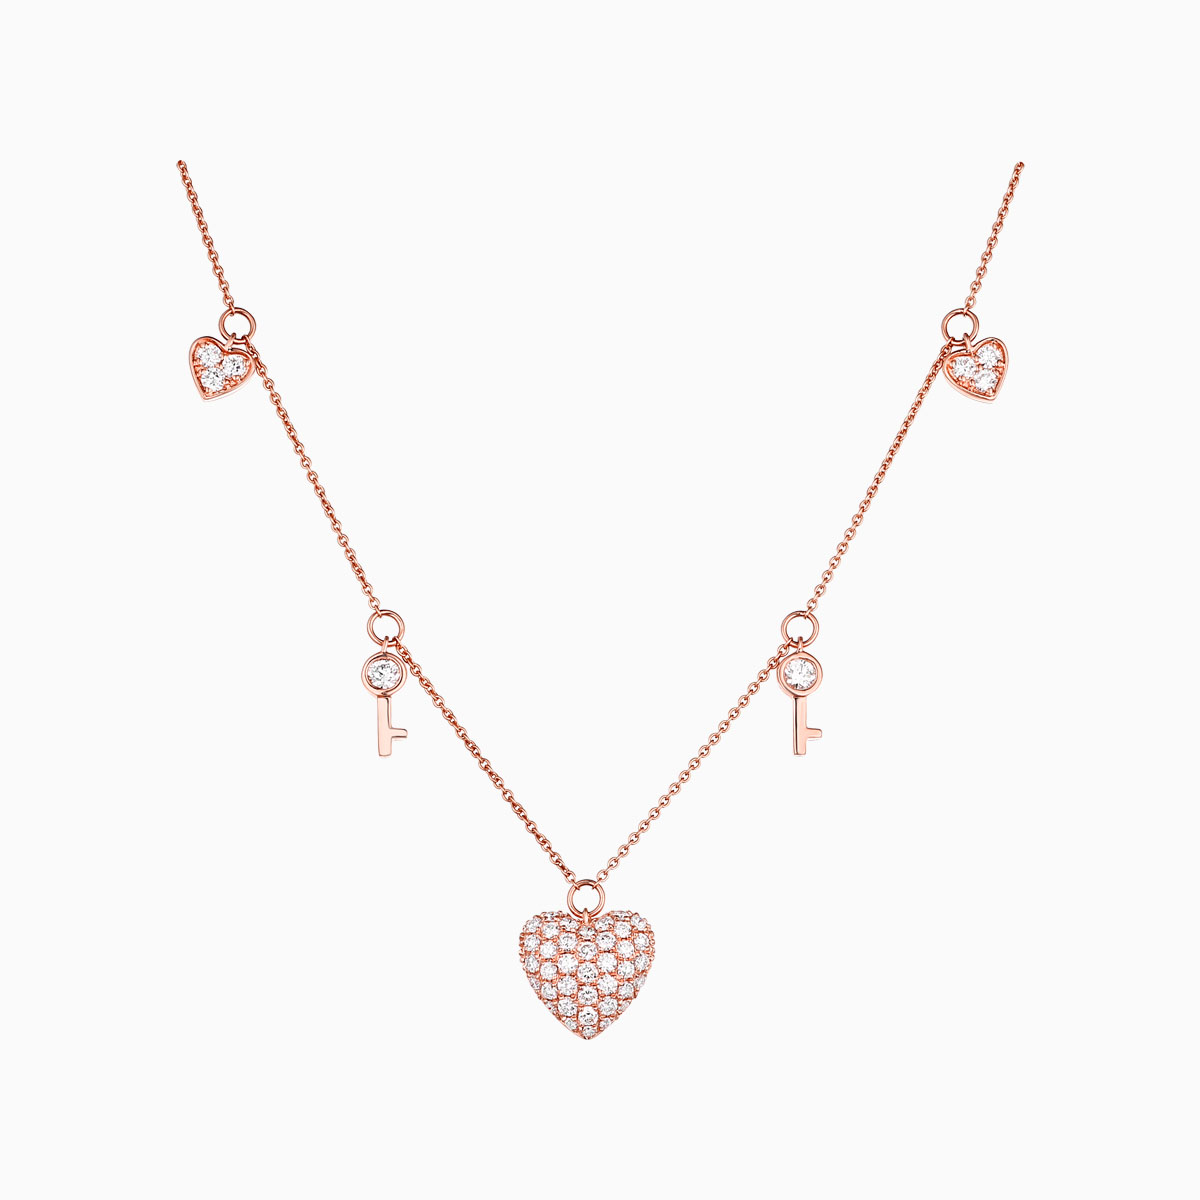 NL25536WHT- 14K Rose Gold Diamond Necklace, 0.76 TCW